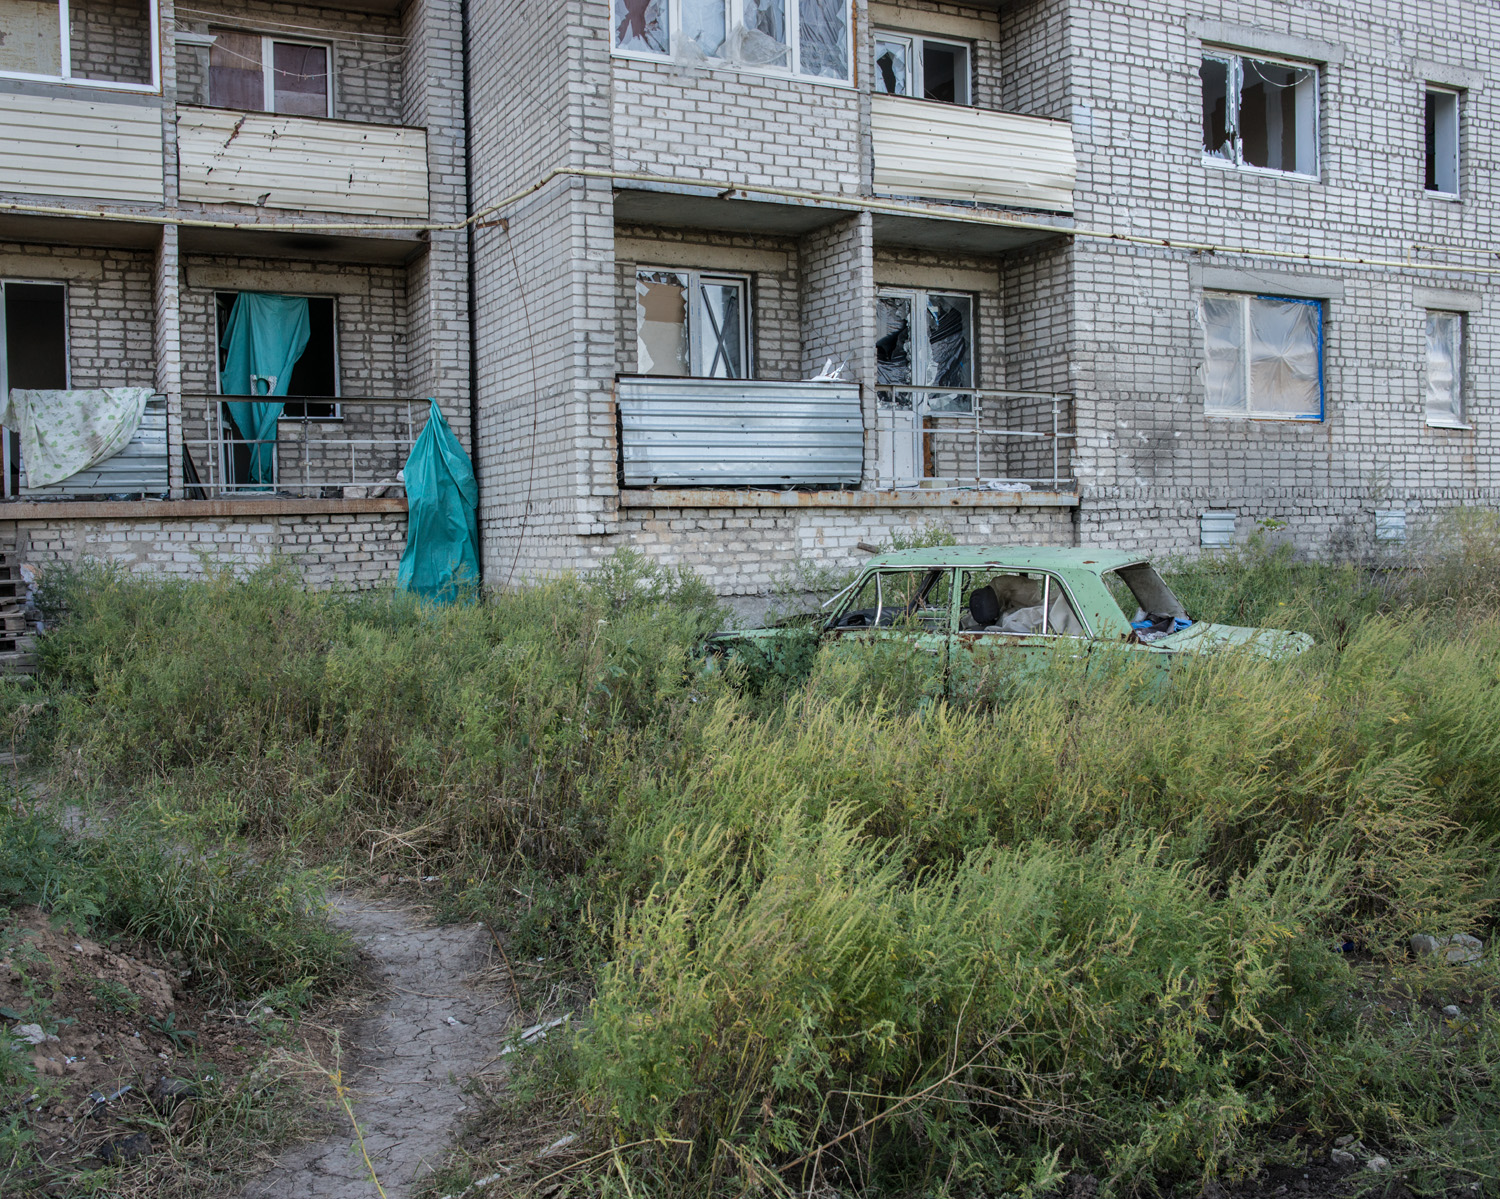 An apartment building in the town of Avdiivka. In mid-2014 Avdiivka was seized by separatists and subsequently reclaimed by Ukrainian forces.